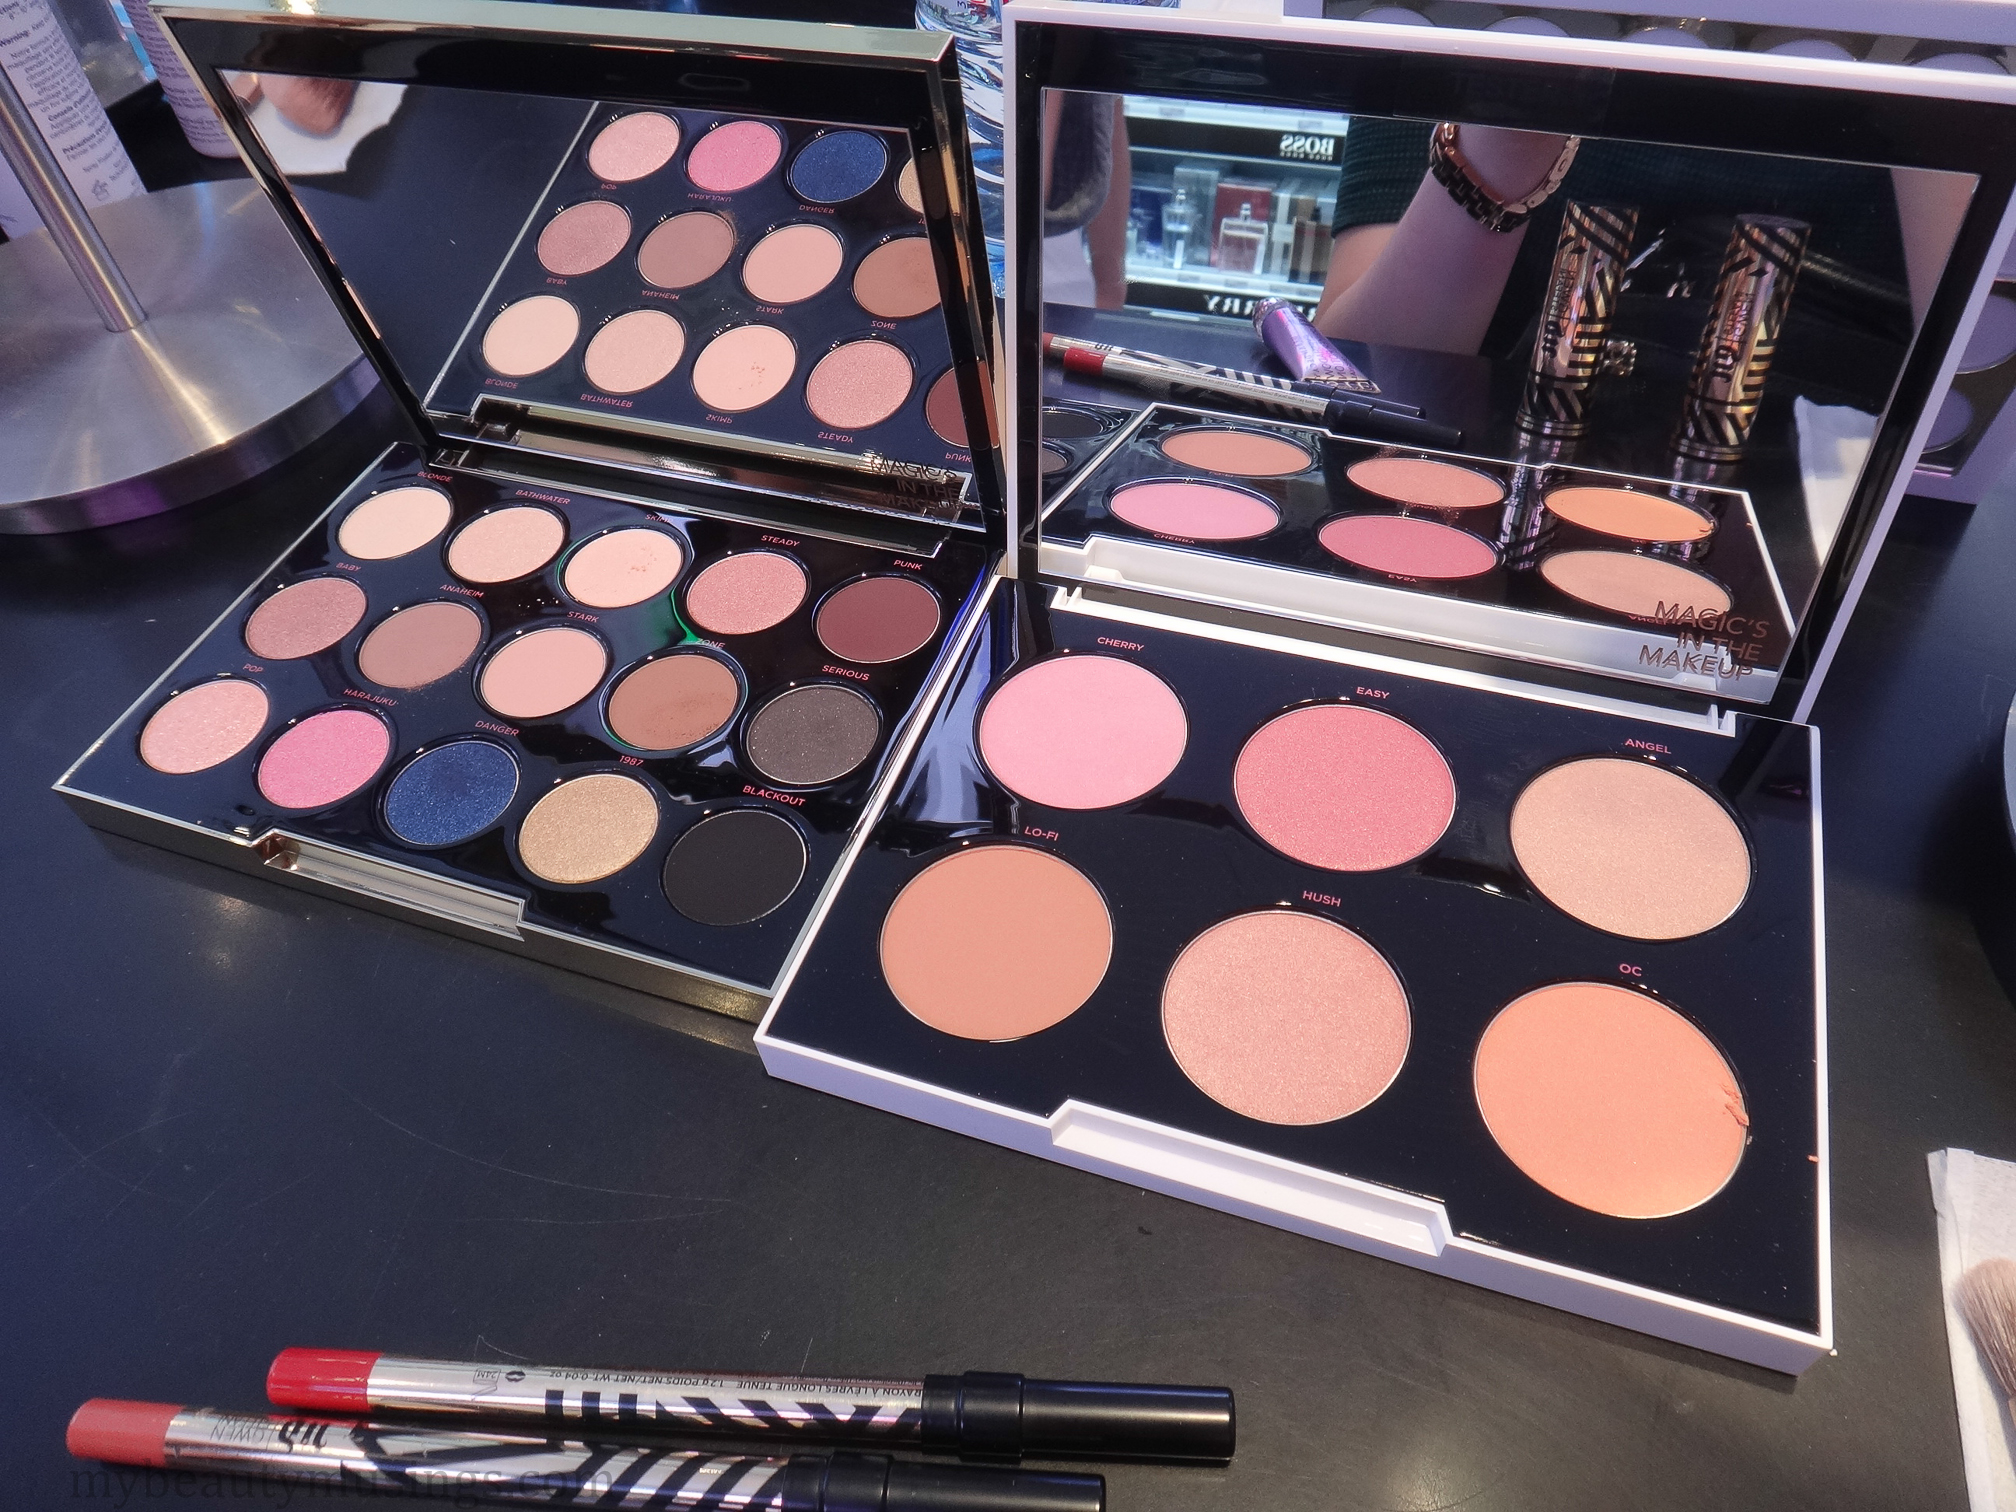 Urban Decay Gwen Stefani eyeshadow blush palette